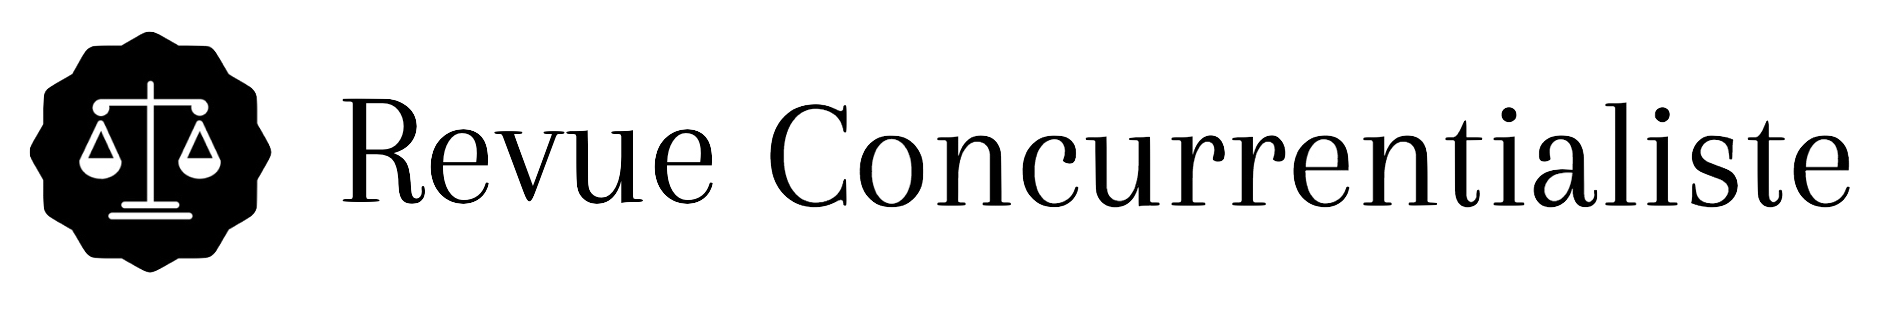 Concurrentialiste Review